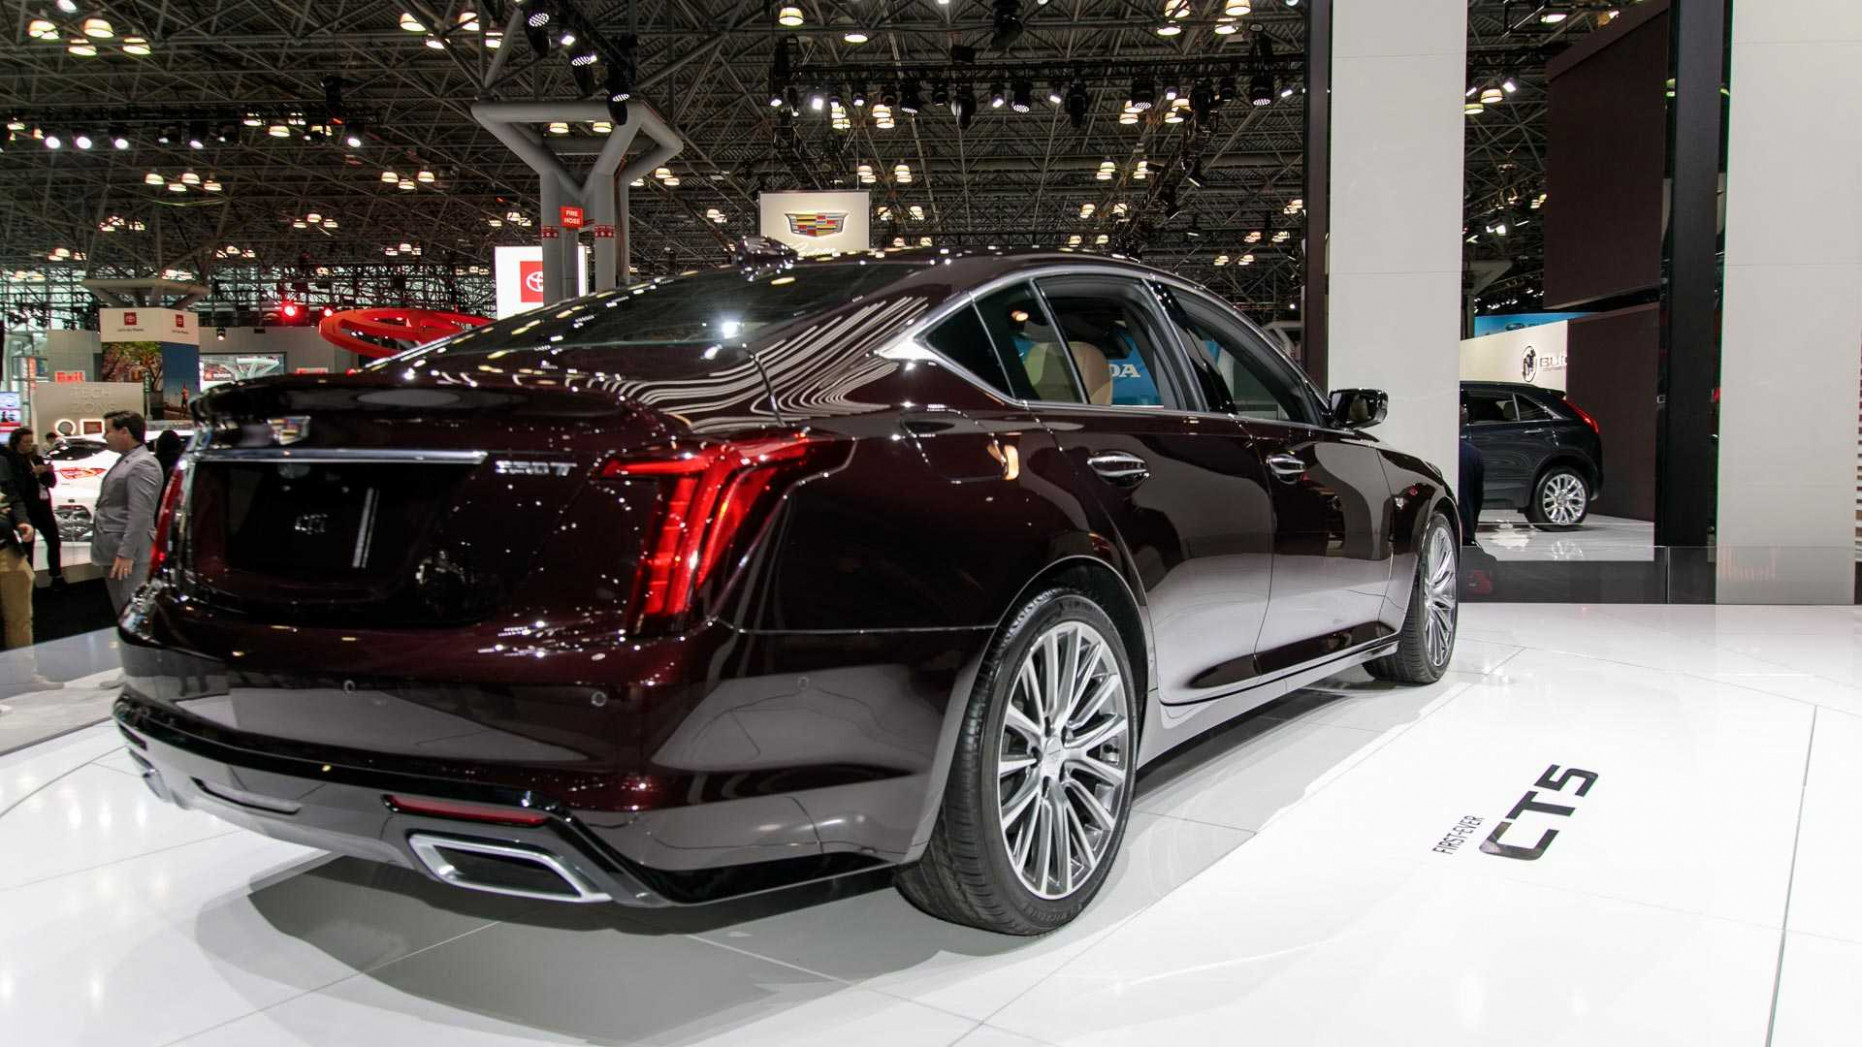 7 Cadillac CT7 Sedan Pricing Starts At $7,7